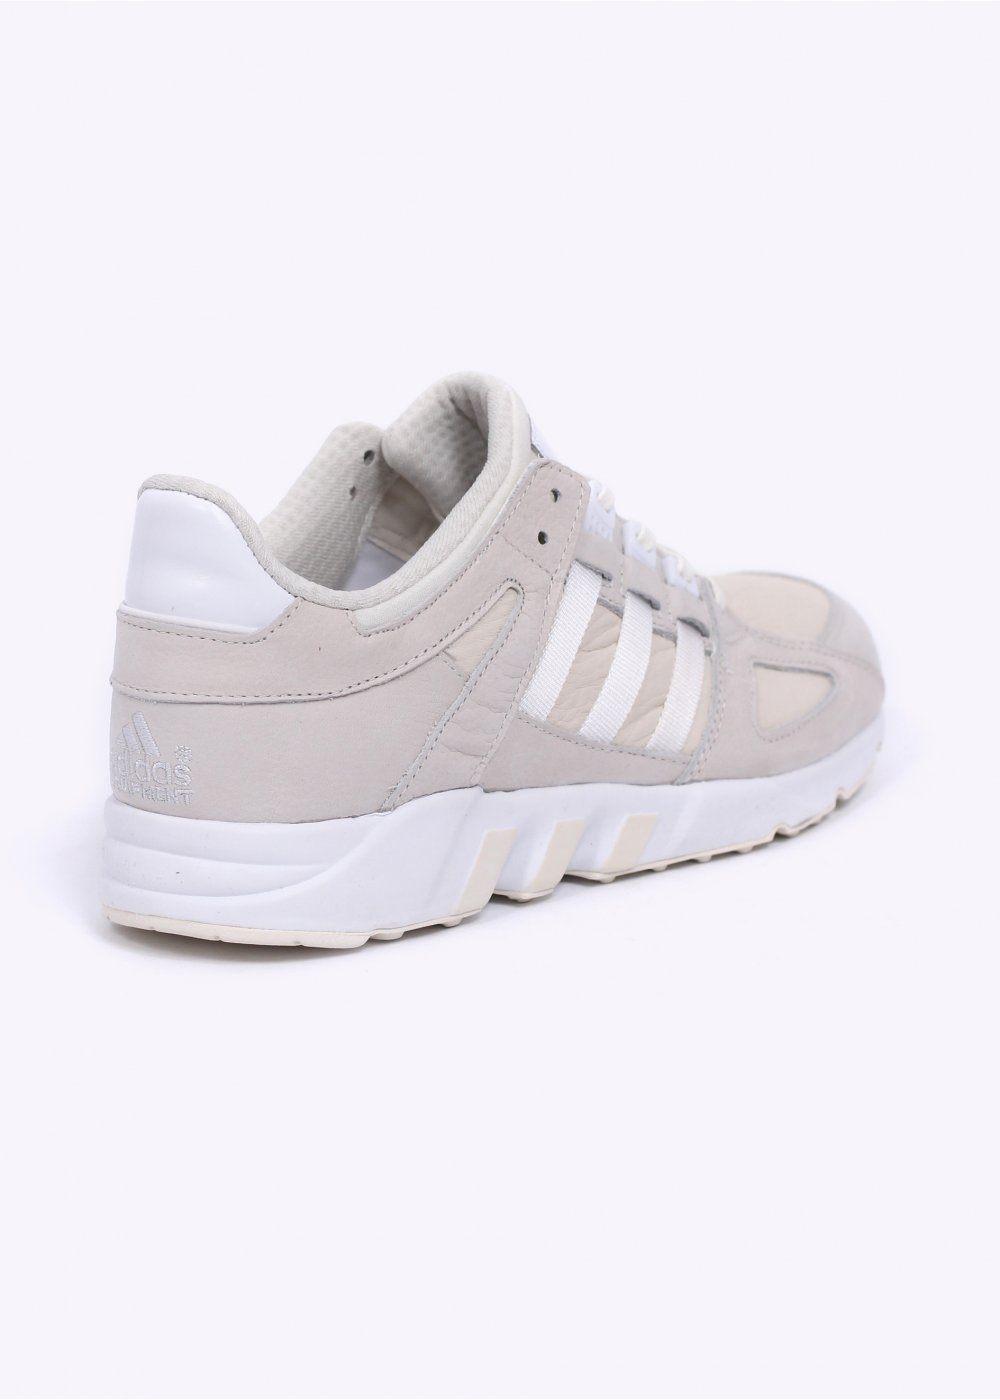 Adidas Eqt Guidance Off White